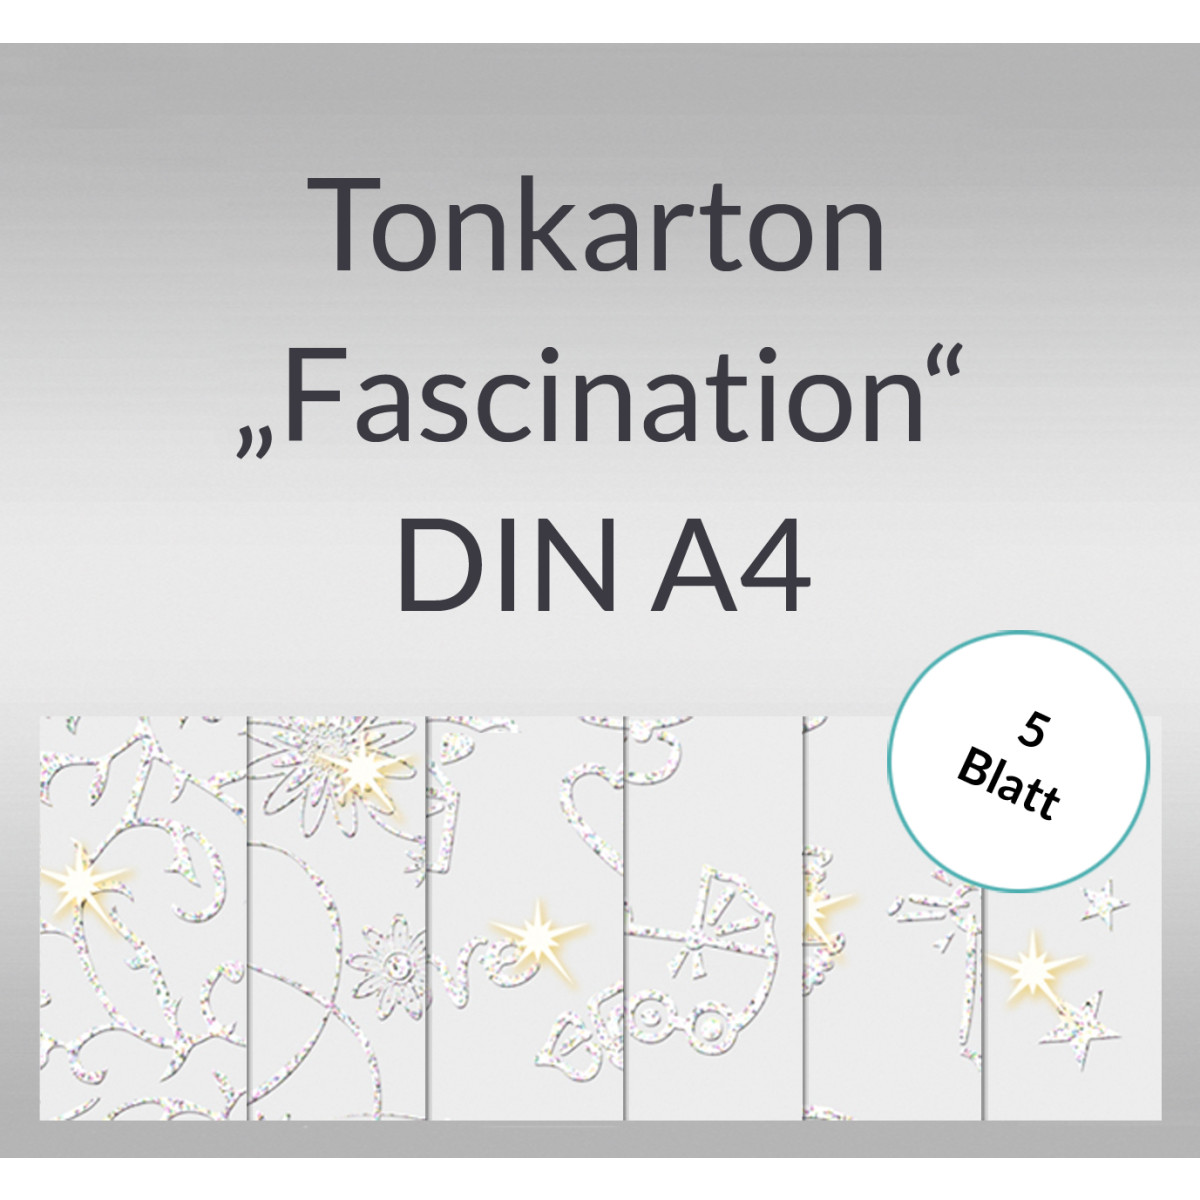 "Tonkarton ""Fascination"" DIN A4 - 5 Blatt"